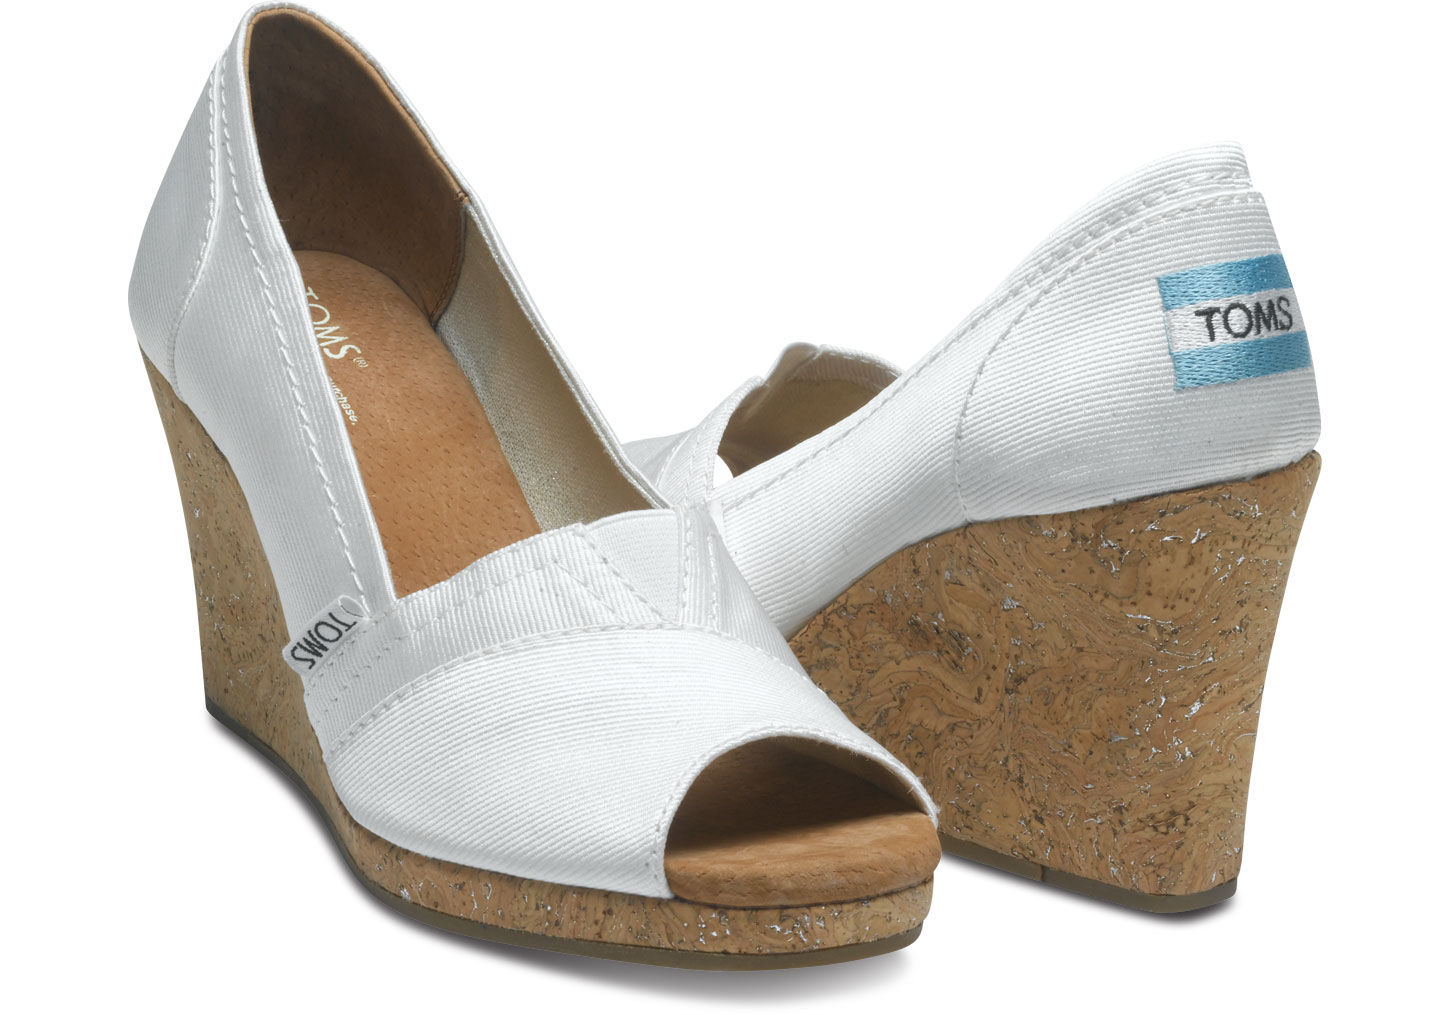 toms wedding shoes photo - 1